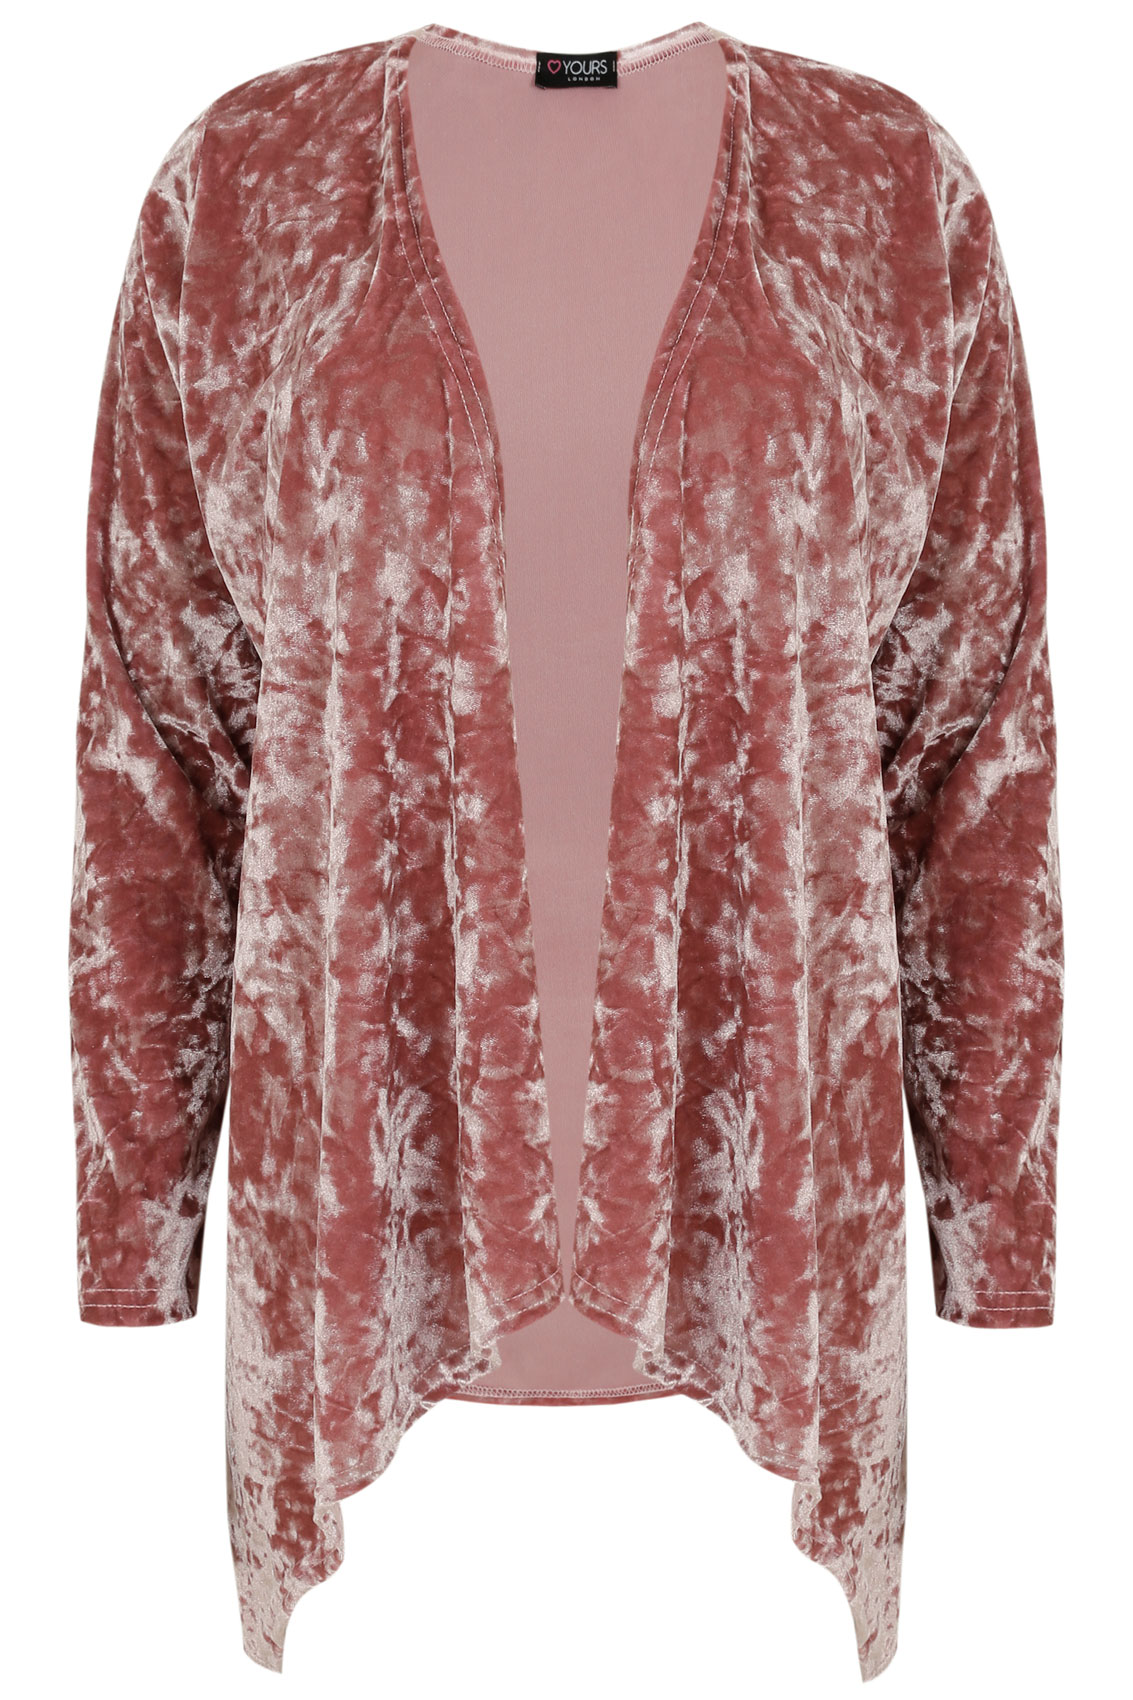 Dusty Pink Crushed Velvet Waterfall Cardigan Plus Size 16 to 36